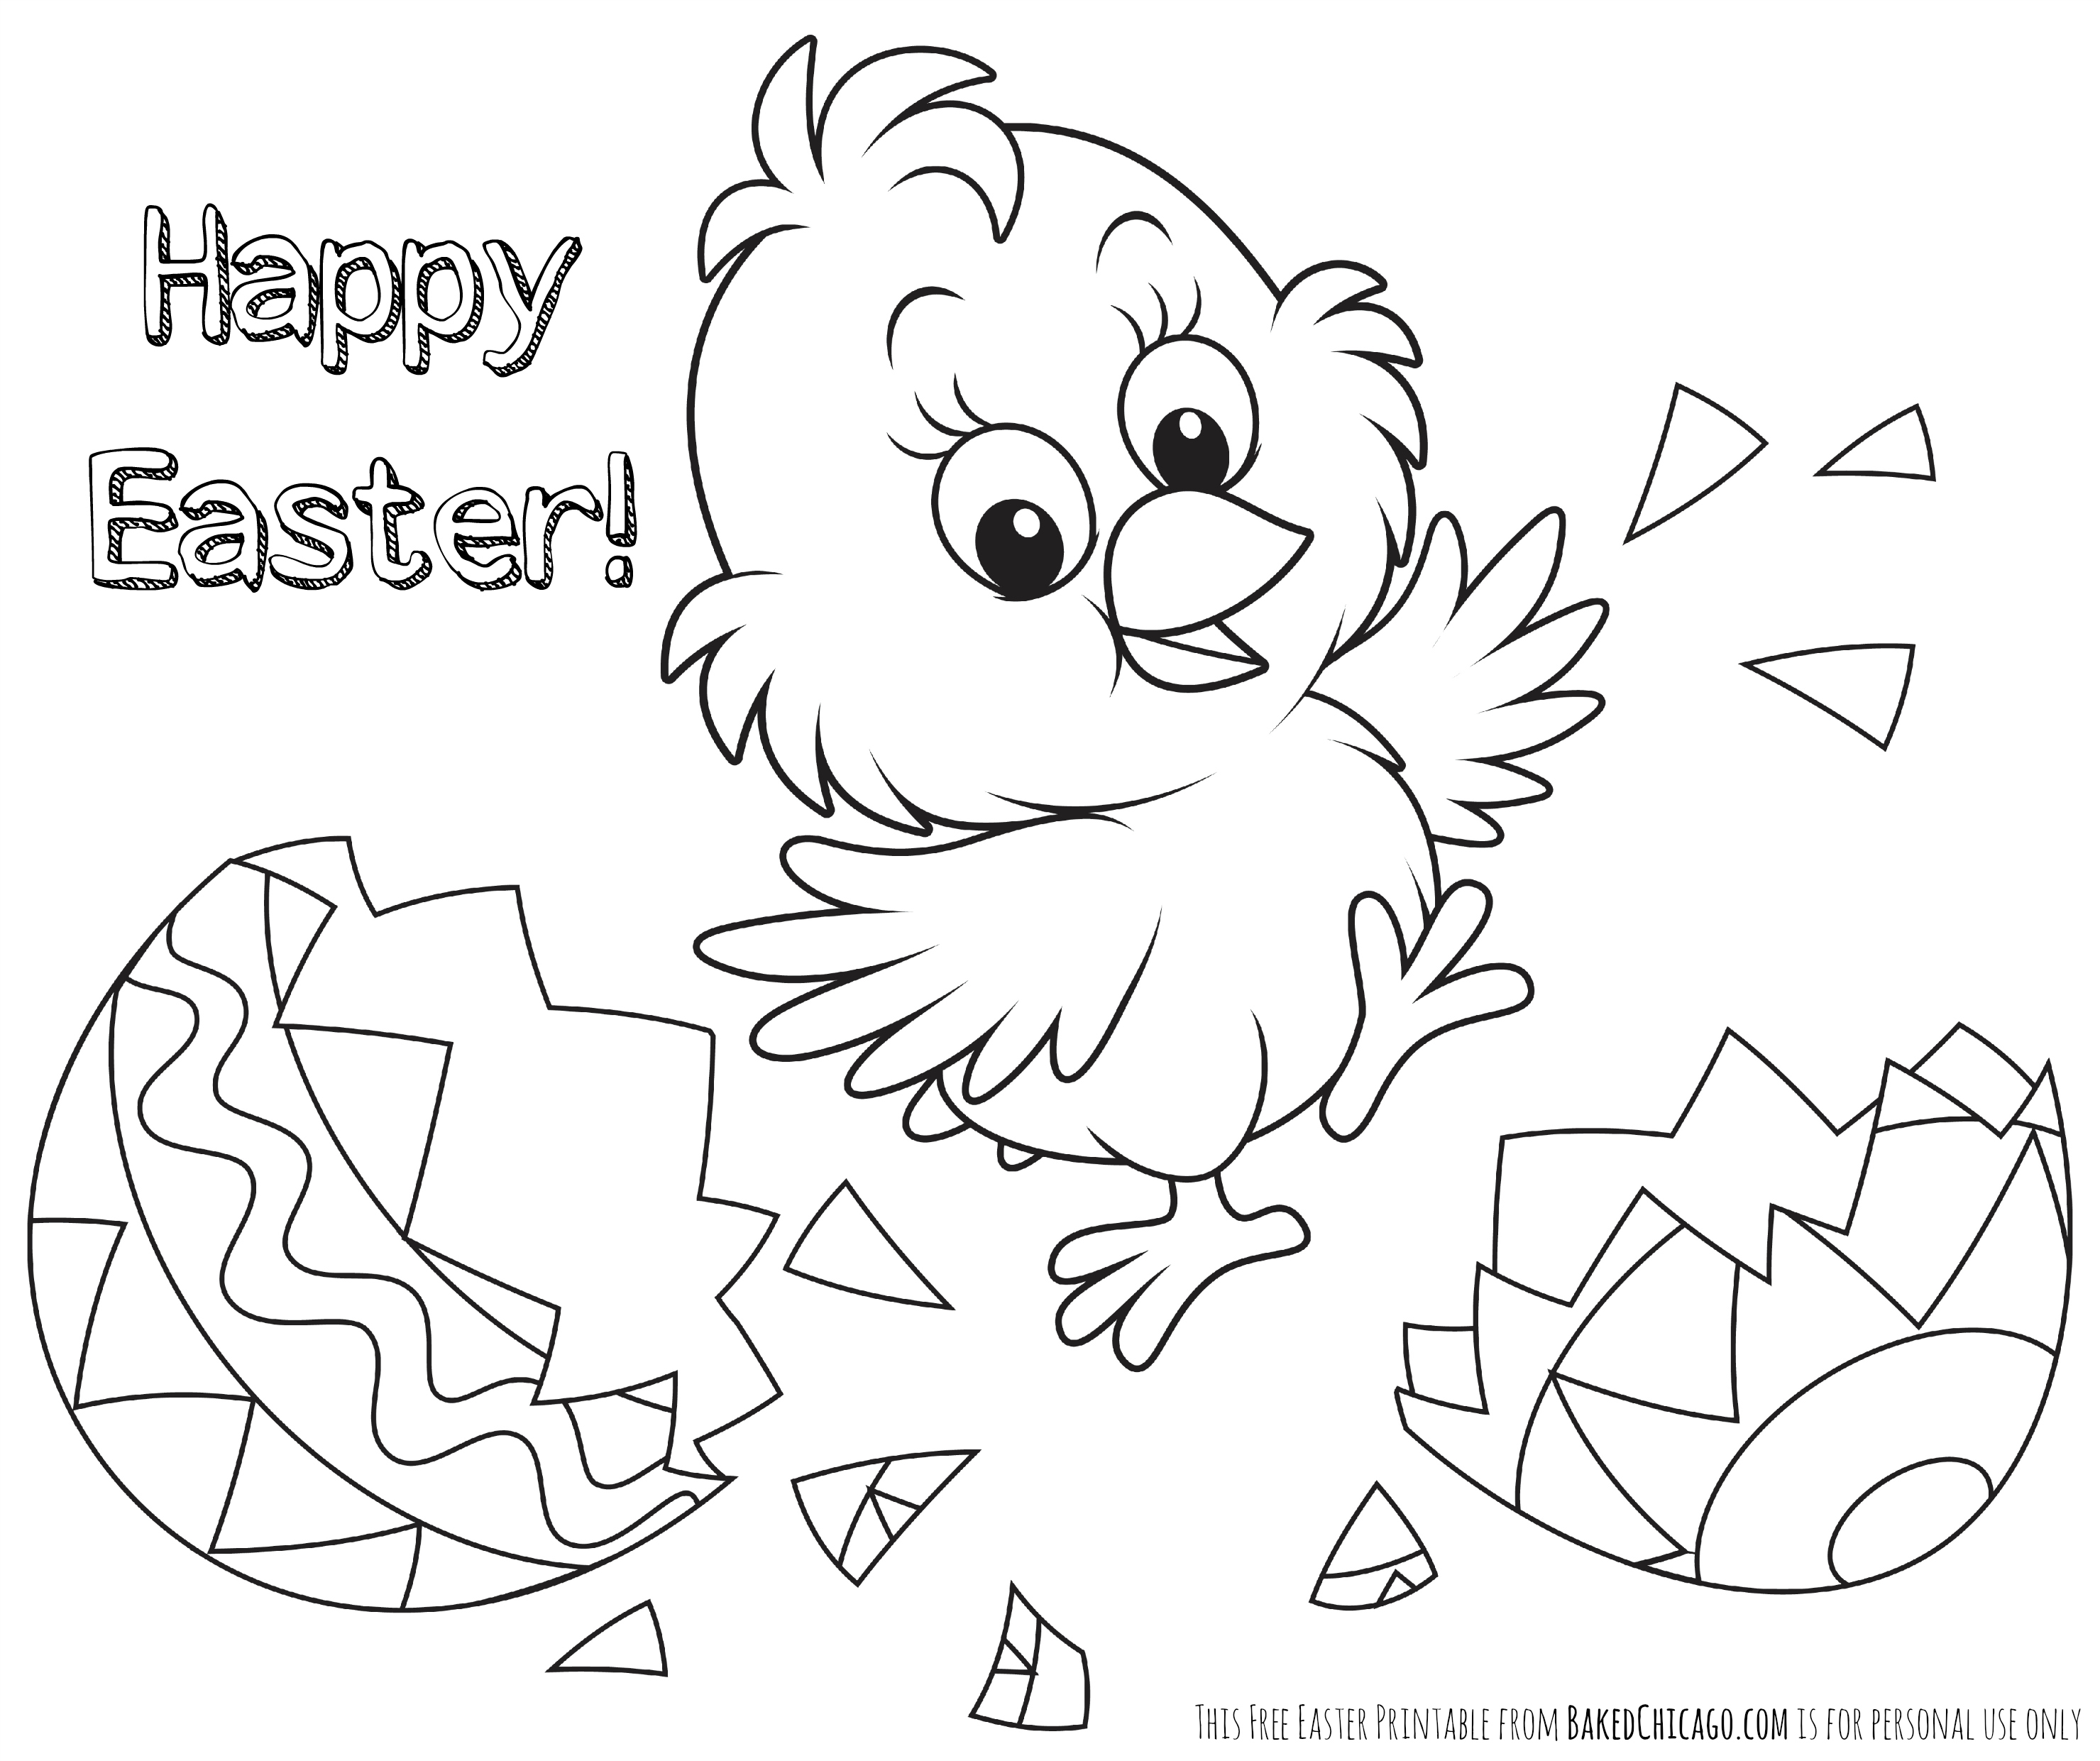 Happy Easter Drawing At Getdrawings